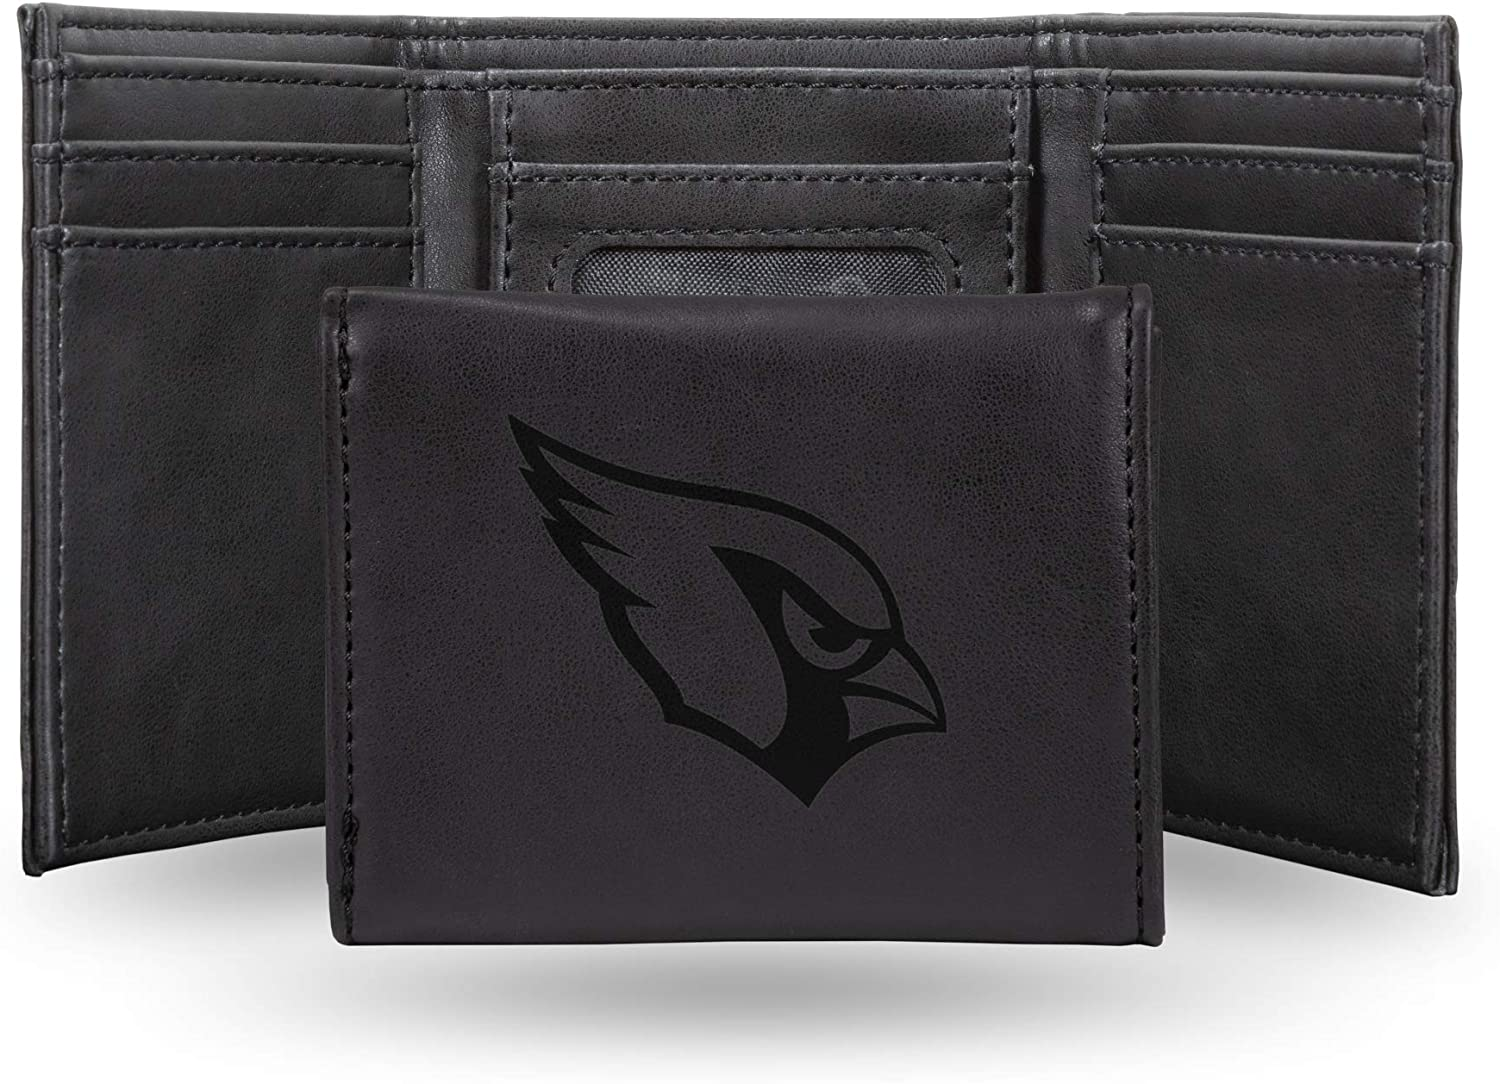 NFL Rico Industries Laser Engraved Trifold Be super welcome Wallet Arizona Cardi Popular product